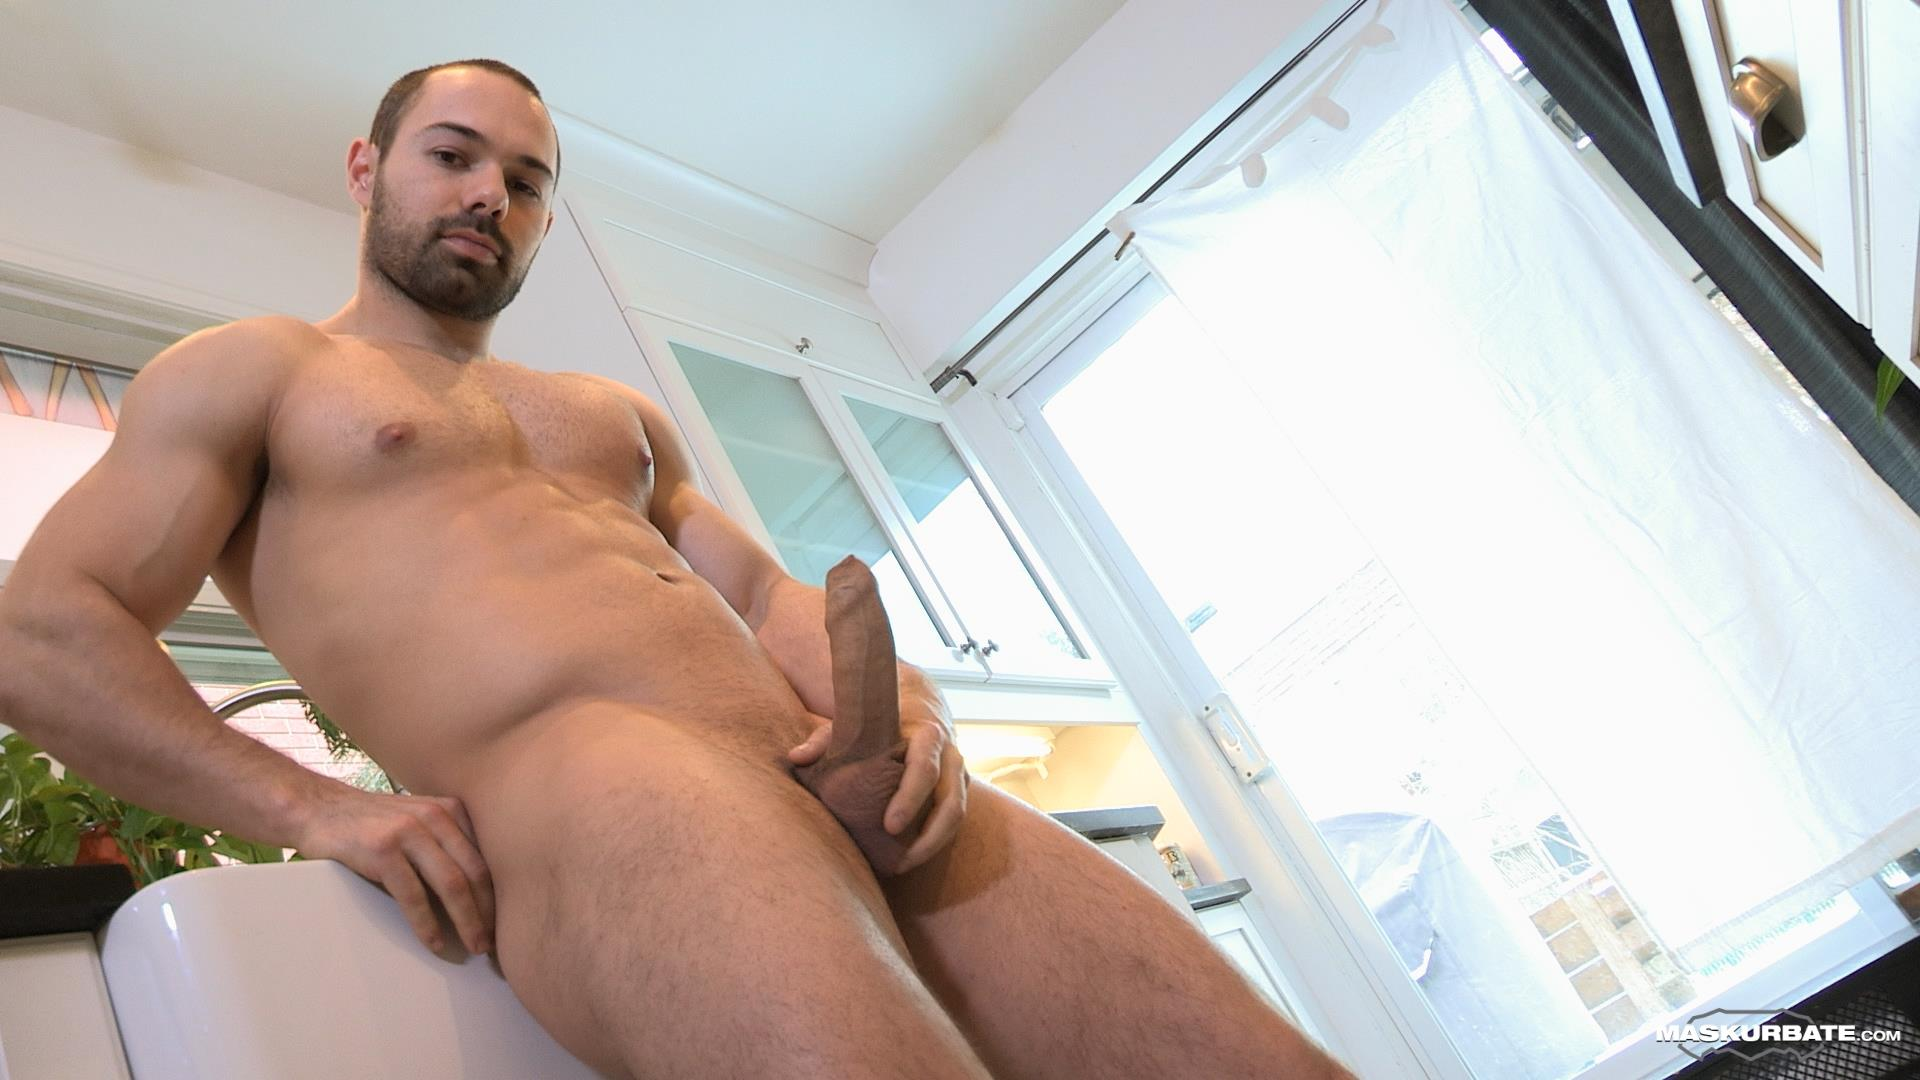 Maskurbate-Muscle-Hunk-With-A-Big-Uncut-Cock-Jerking-Off-Amateur-Gay-Porn-12 The Naked Chef Jerks His Big Uncut Cock In The Kitchen